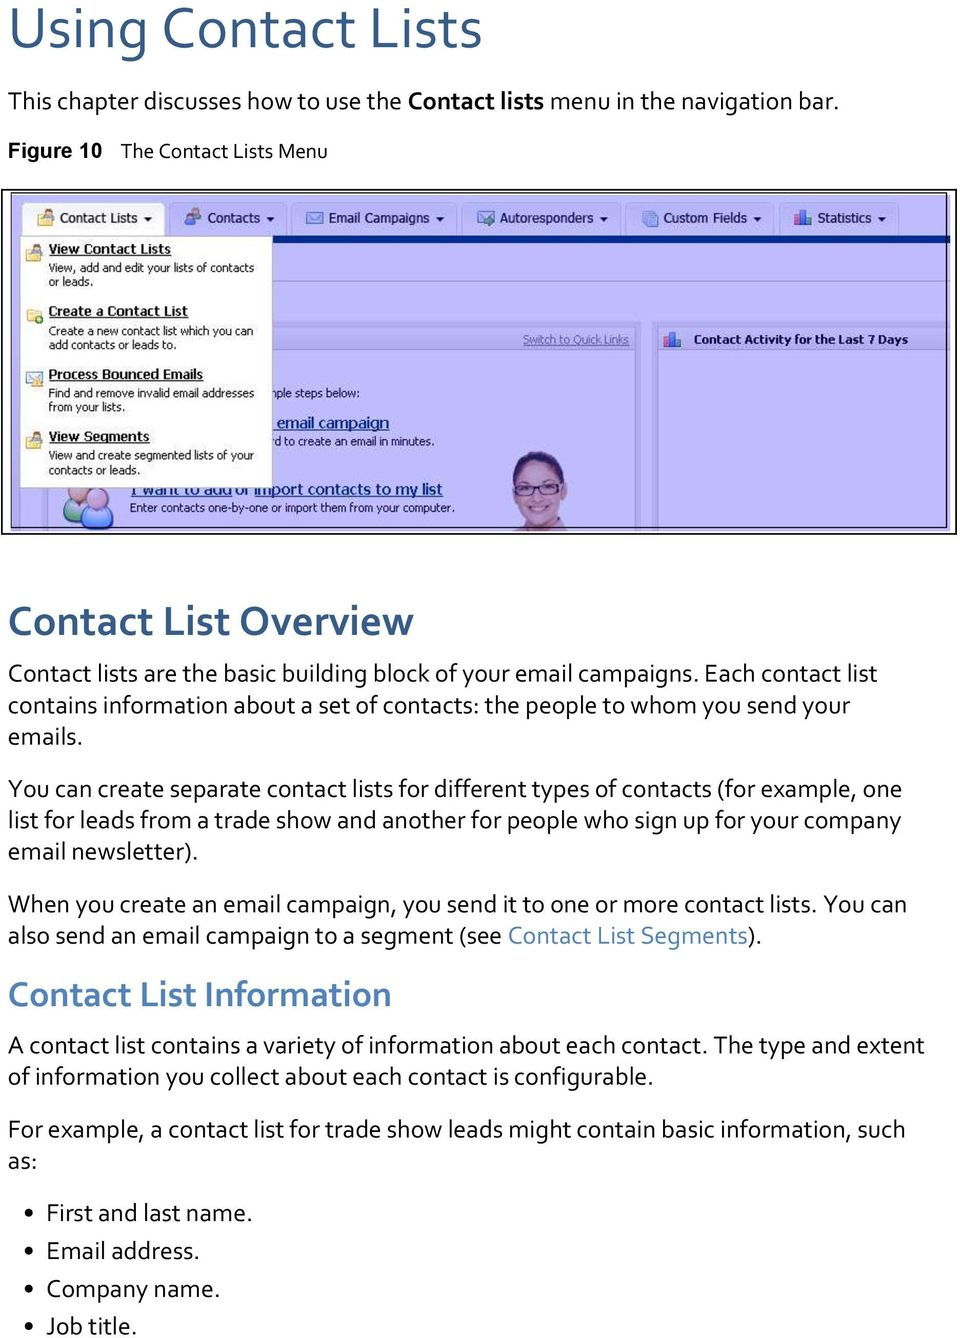 Each contact list contains information about a set of contacts: the people to whom you send your emails.